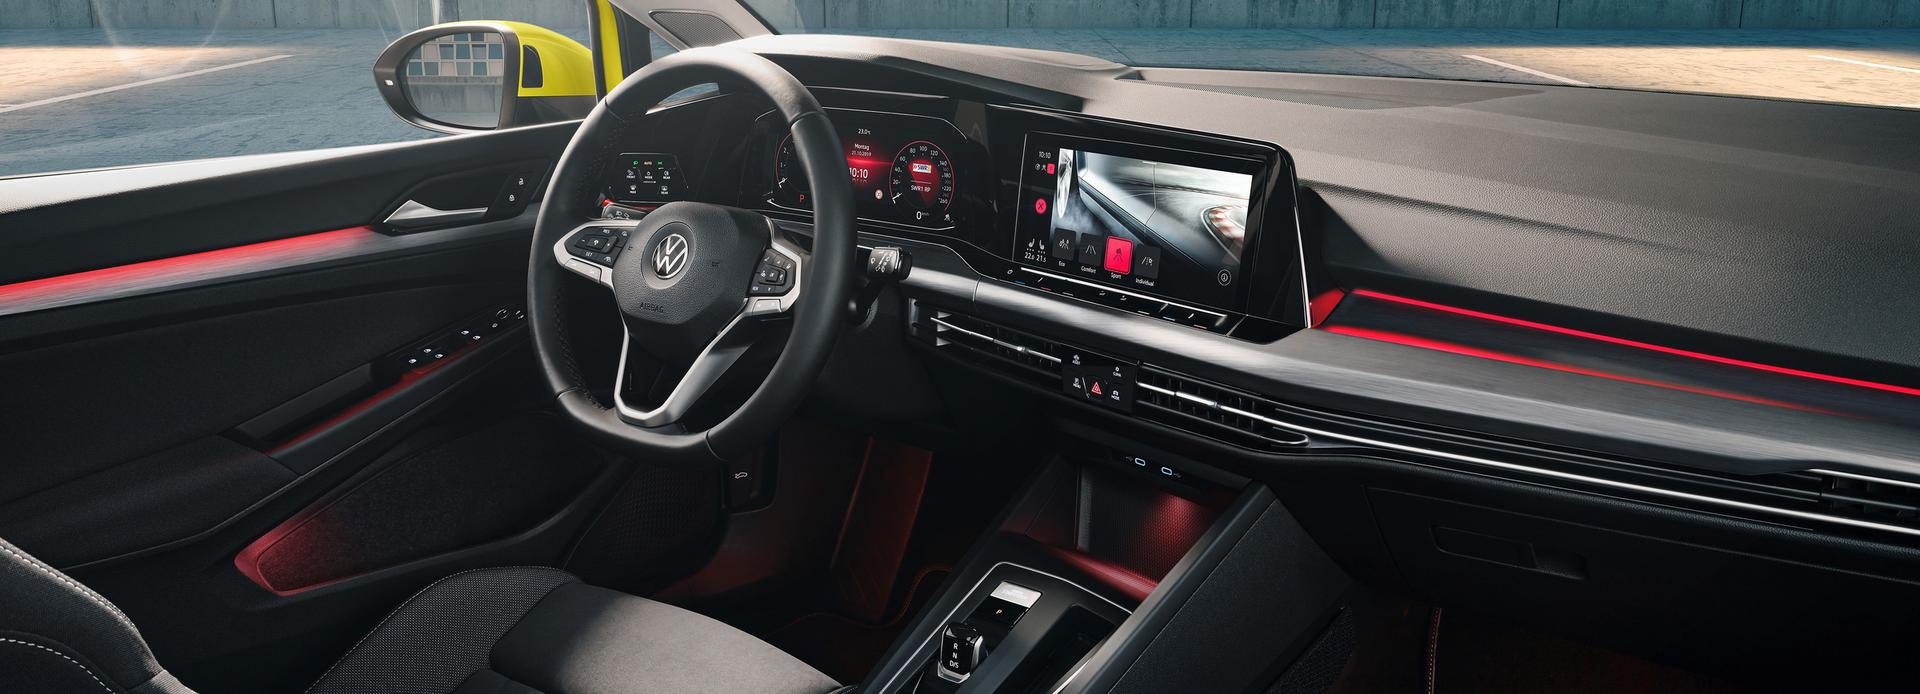 New Golf 8 Interior